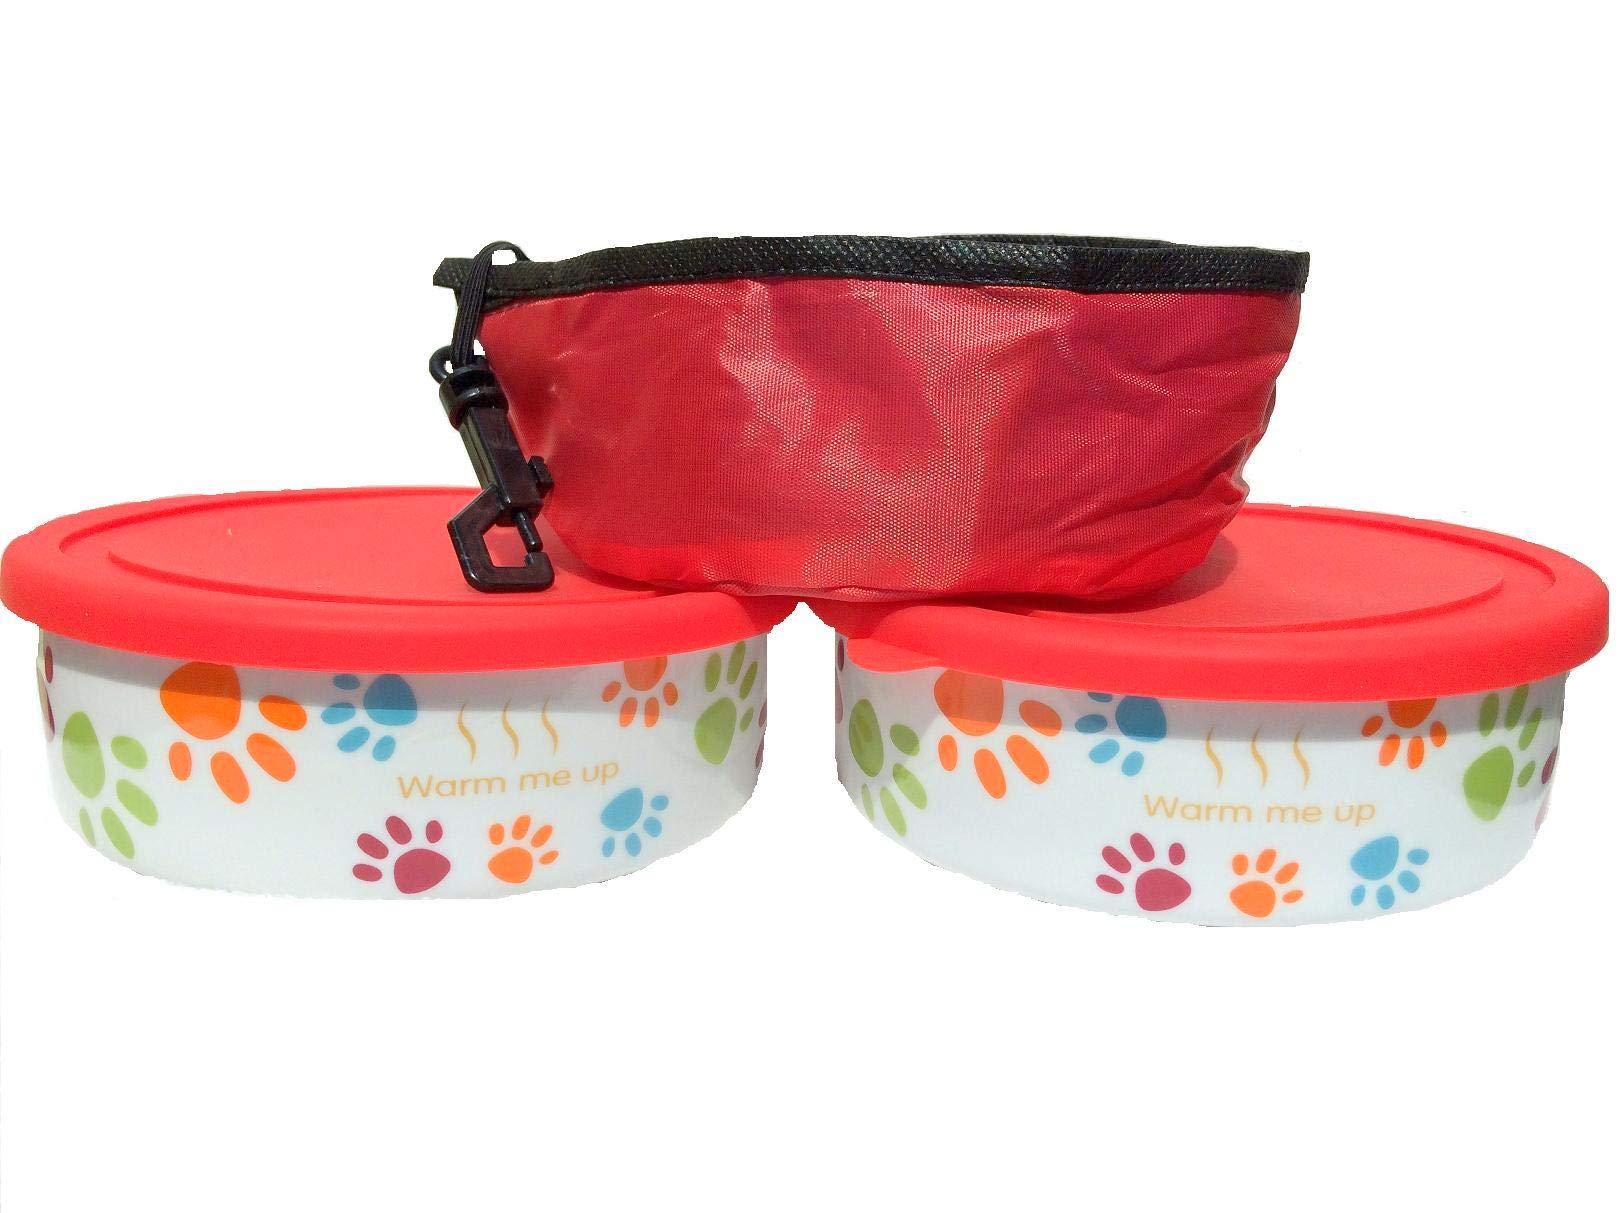 2 Dog/ Cat Bowls with Lid plus a Free Pet Travel Bowl. This Pet Dish Set is FDA approved porcelain material+ airtight storage lid plus collapsible Pet Travel Bowl for dog cat food or water by Quality Line (Image #3)